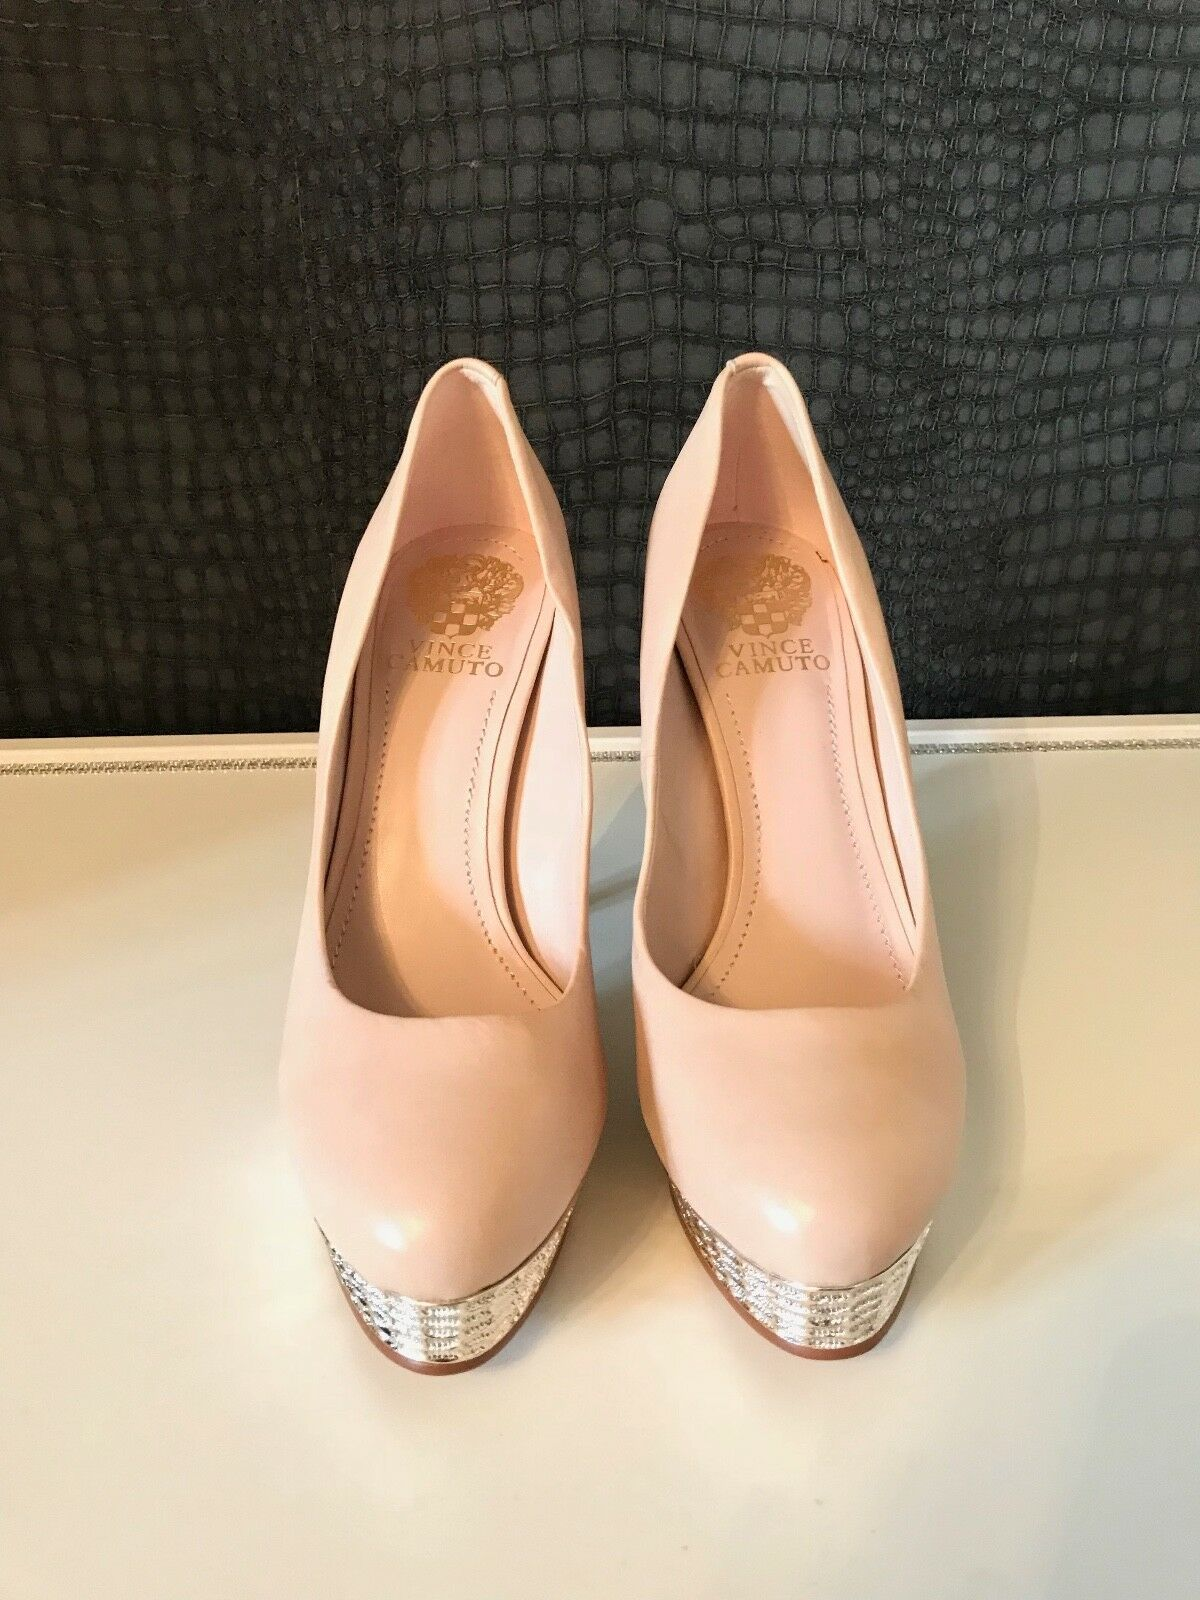 NEW WITHOUT BOX - VINCE CAMUTO NUDE & SILVER SILVER SILVER SHOES - UK 5 38 c9a557